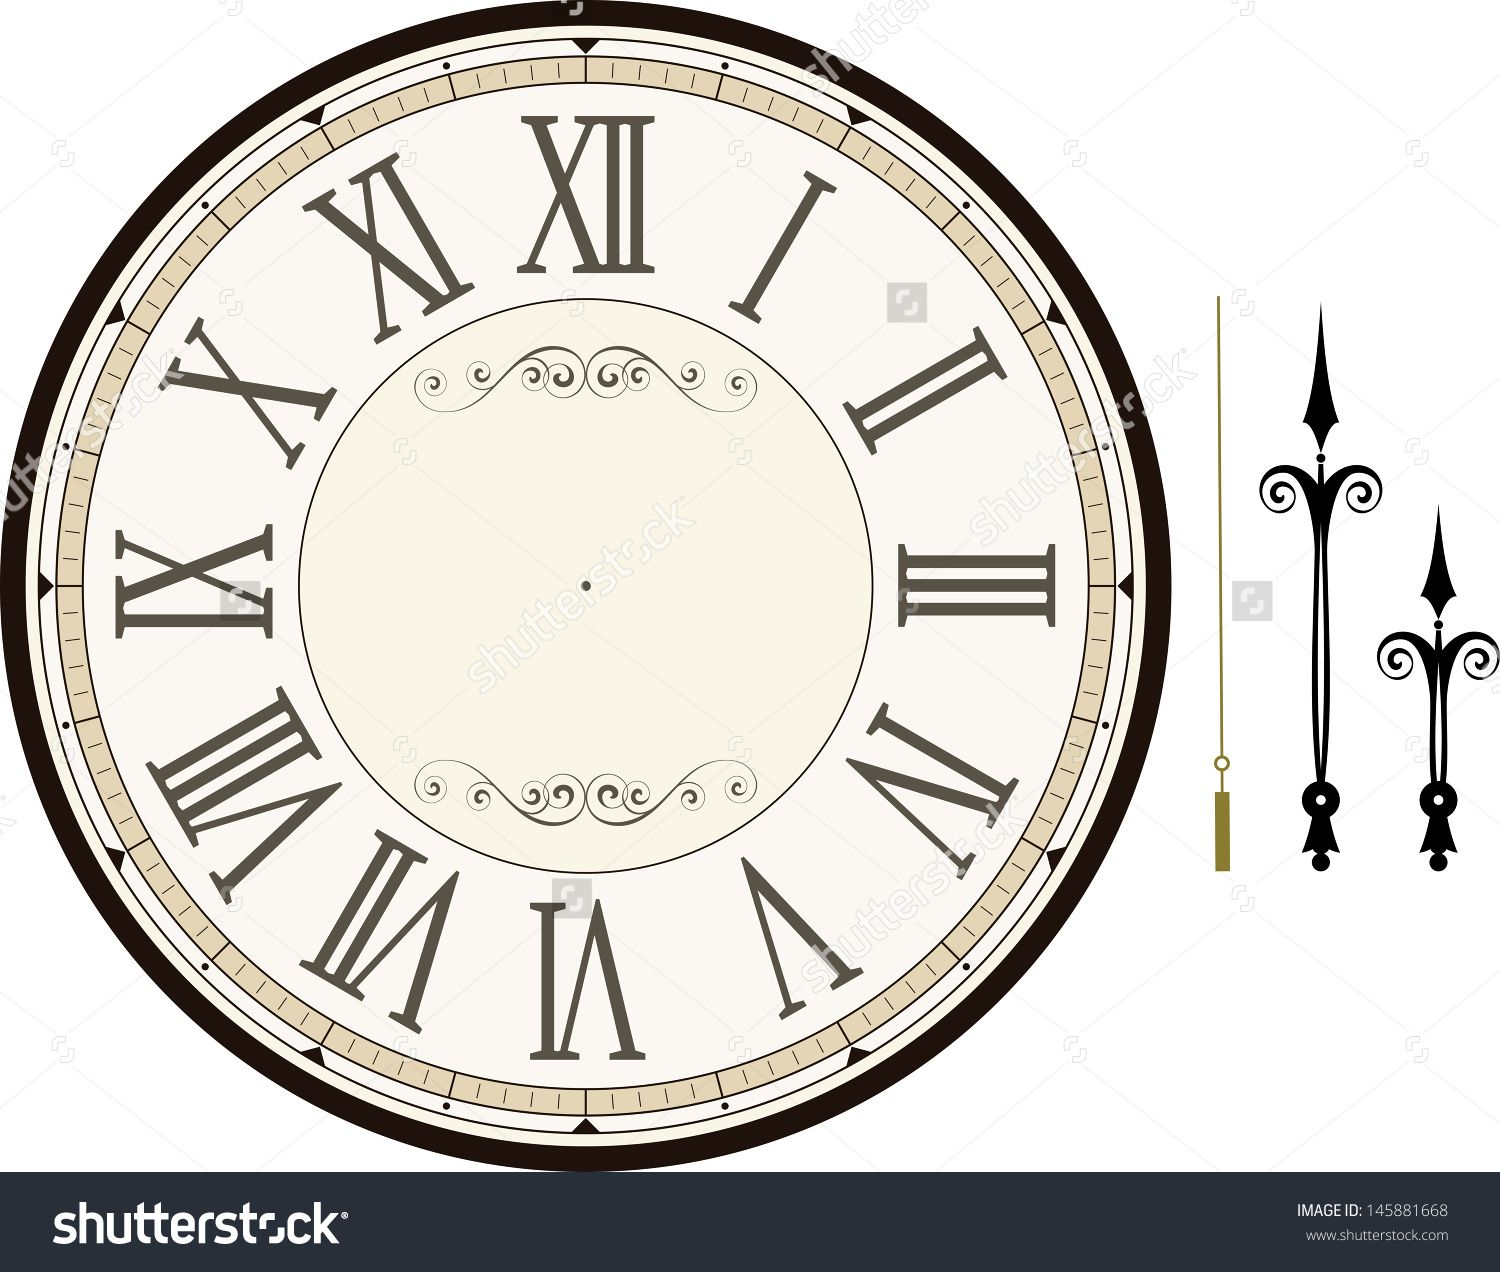 Vintage Clock Face Template With Hour Minute And Second